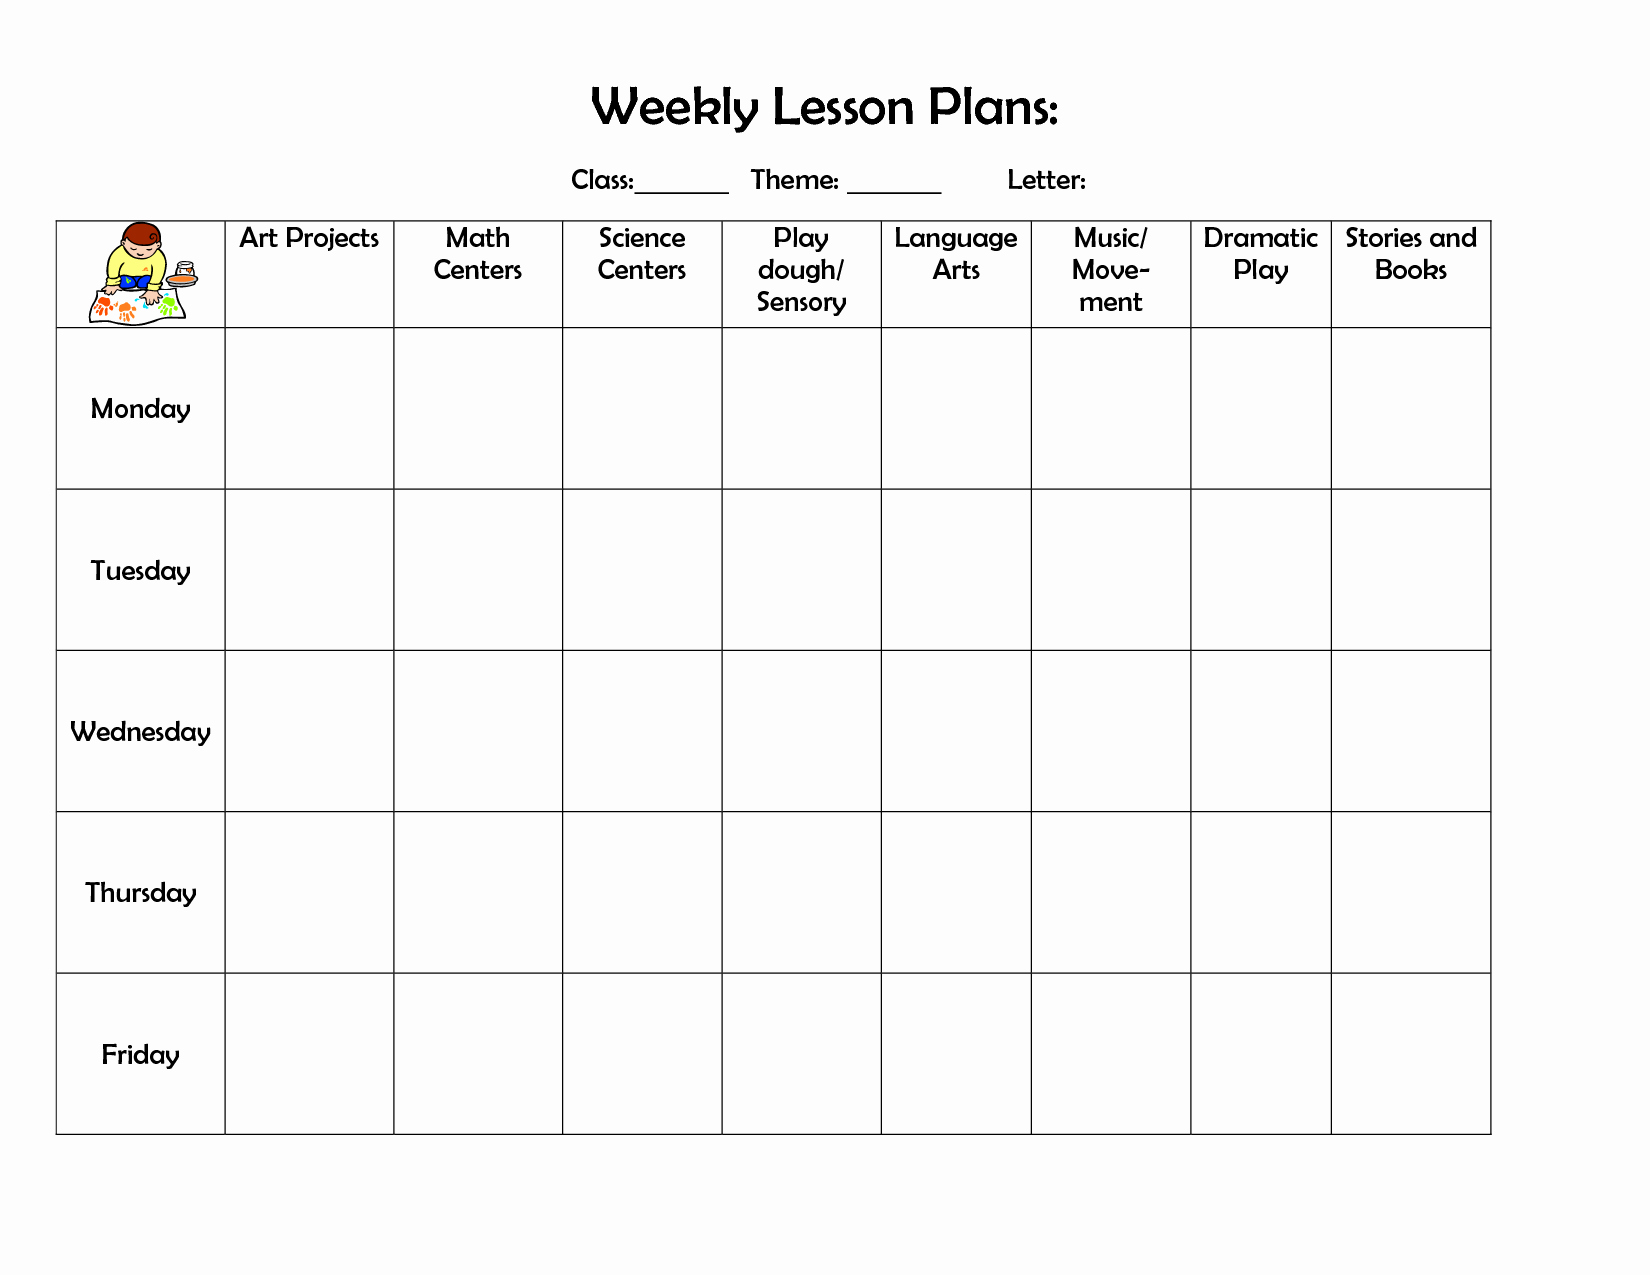 Monthly Lesson Plan Template Elegant Infant Blank Lesson Plan Sheets Weekly Lesson Plan Doc Lesson Plan forms